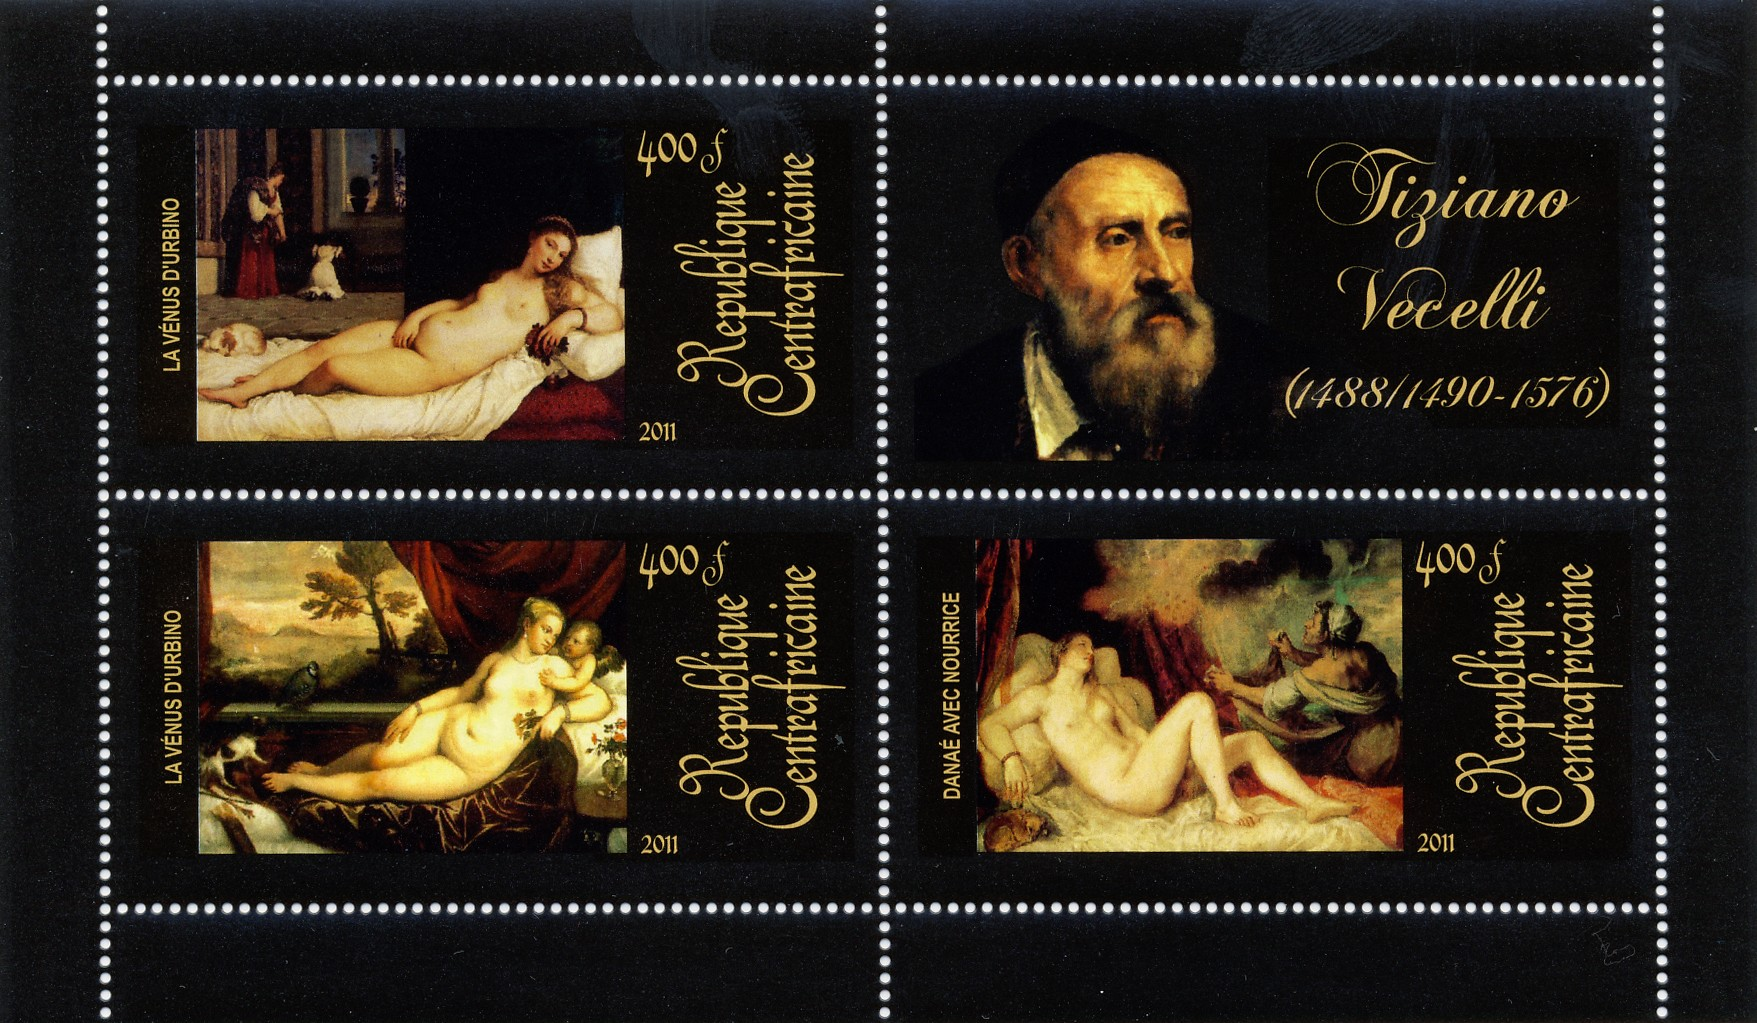 Paintings of  Tiziano Vecelli, (1488/1490-1576). (La venus d'urbino, Danae avec Nourrice). - Issue of Central African republic postage stamps